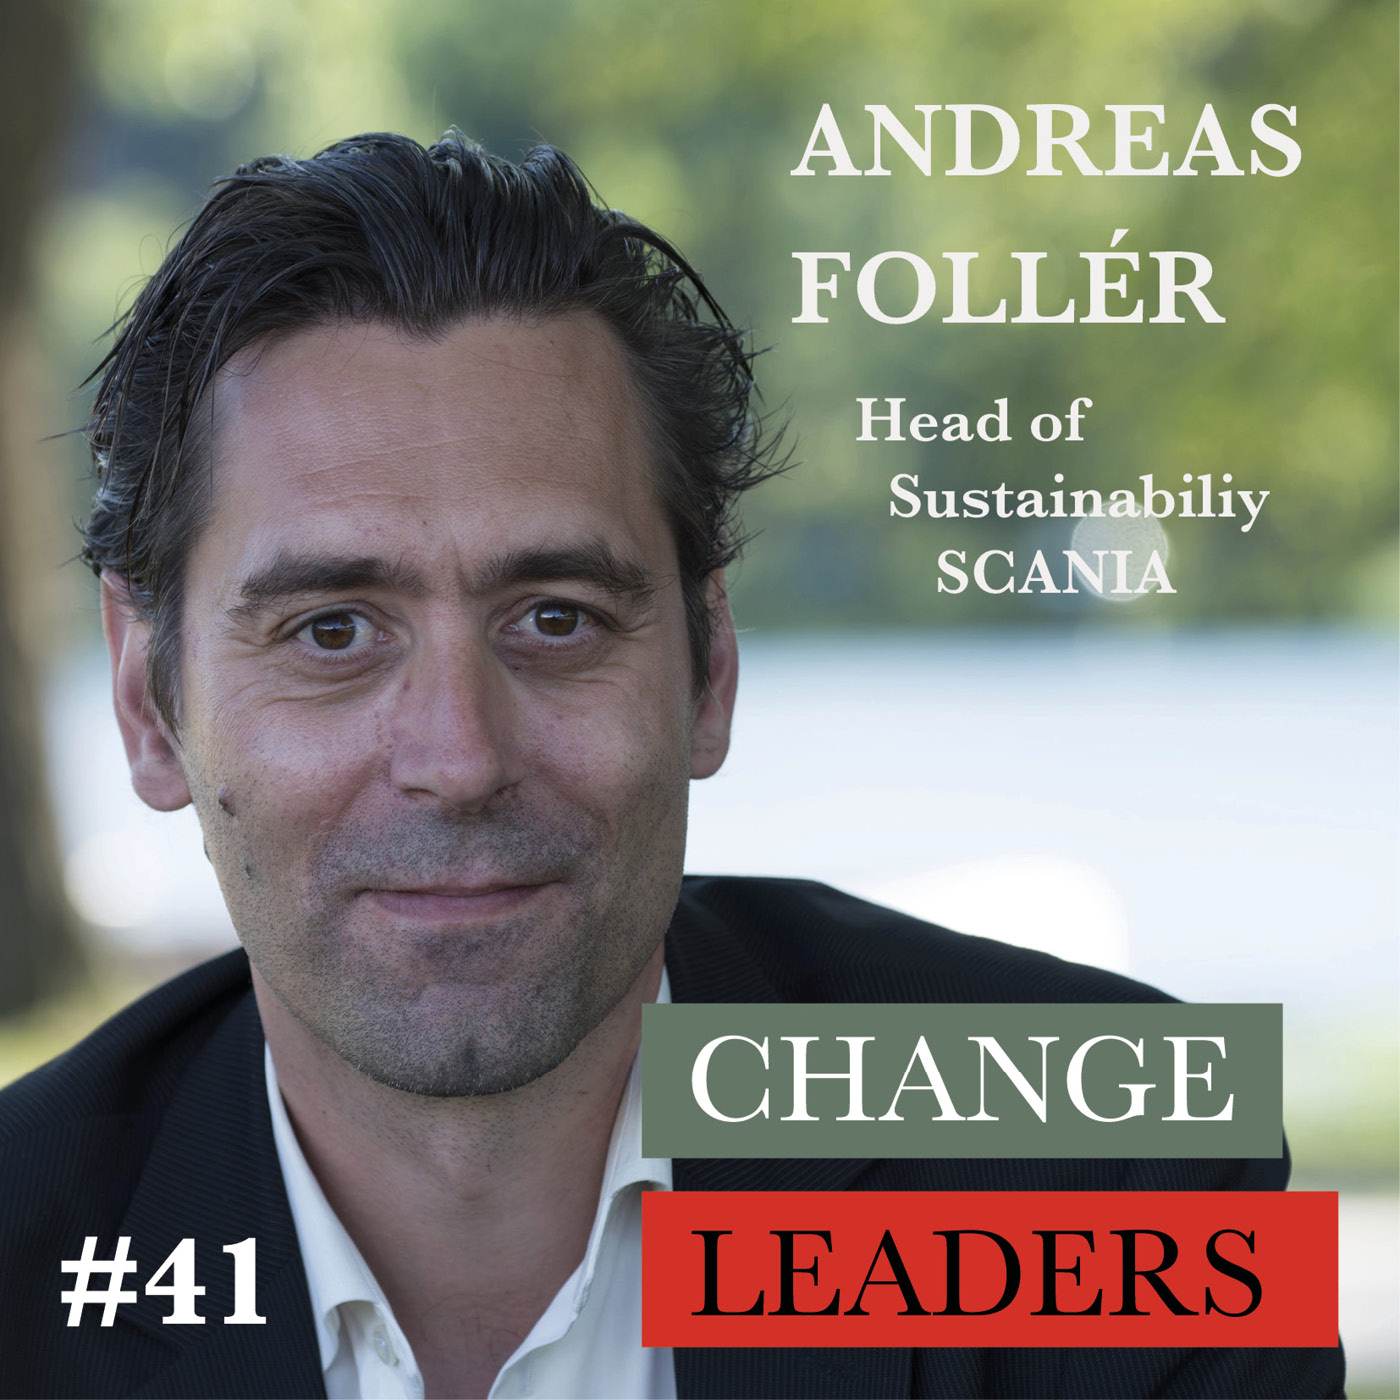 #41 Andreas Follér, Head of Sustainability SCANIA - Transforming the transport sector